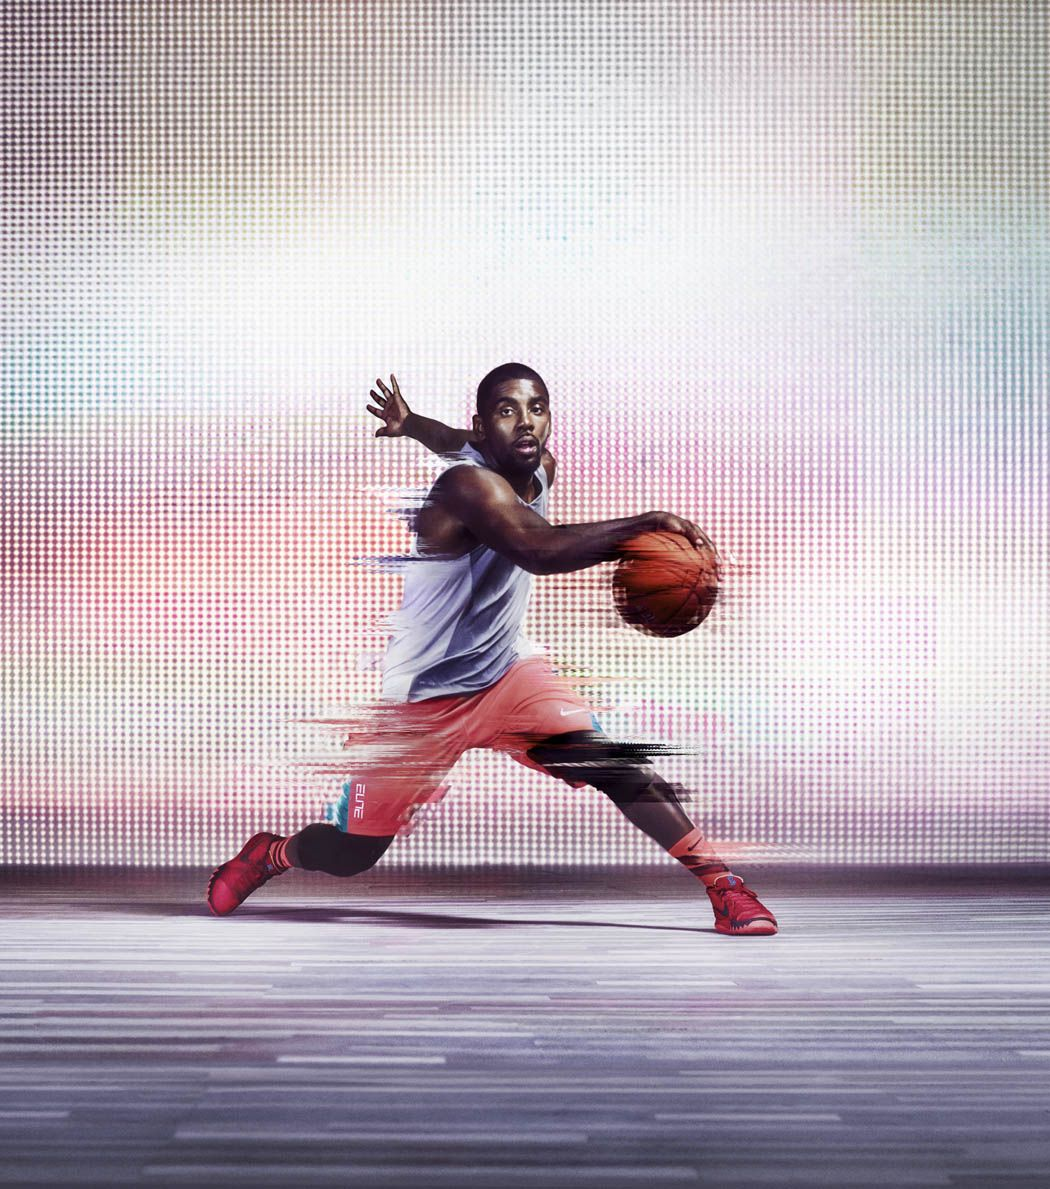 half off ad4d8 a2f19 Kyrie Irving Cavs, Cavs Wallpaper, Irving Wallpapers, Basket Sport, Nike  Basketball,